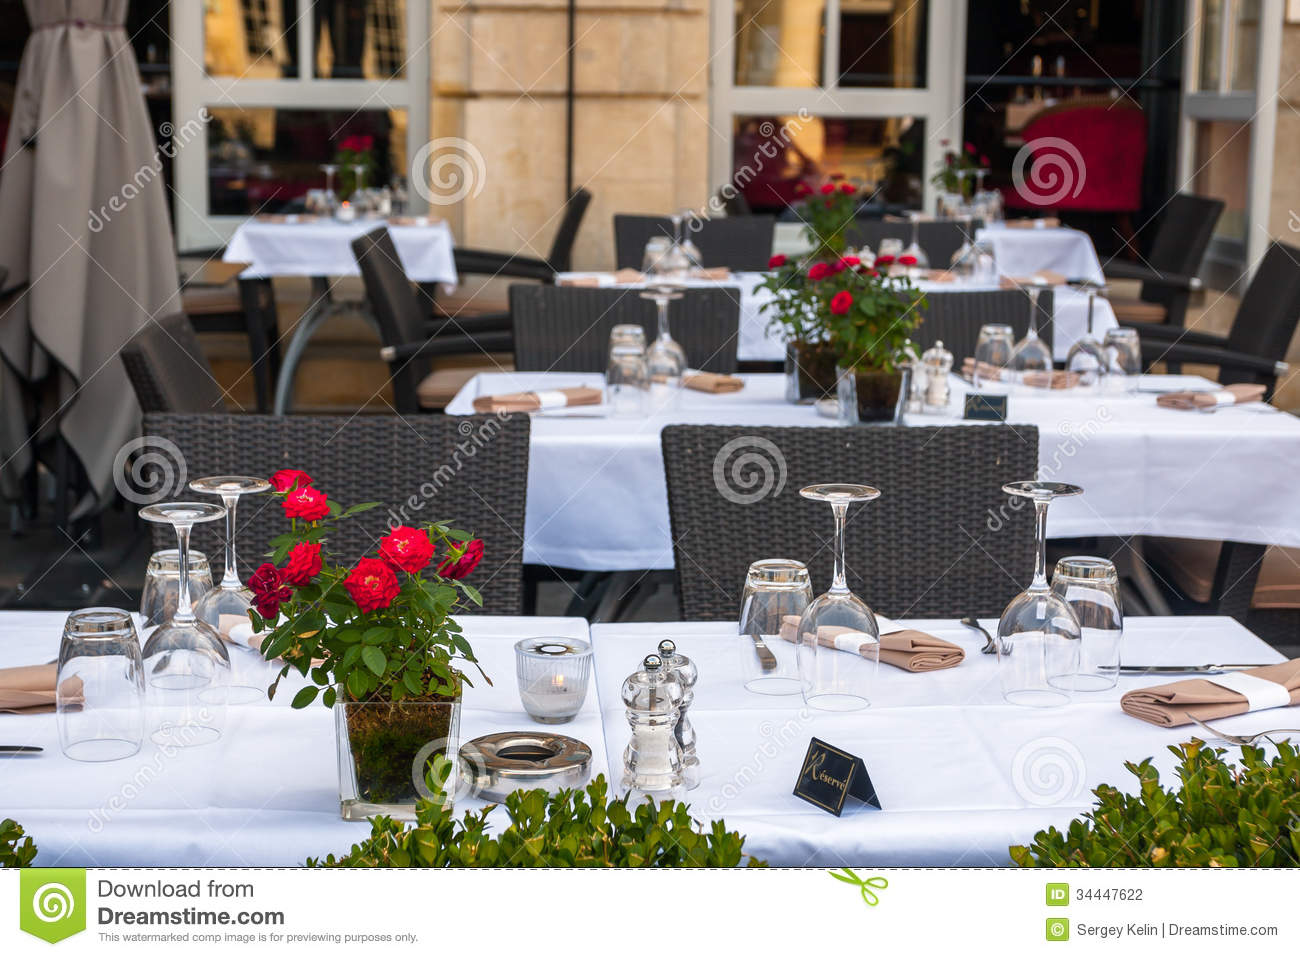 Street view of a cafe terrace with tables and chairs in bordeaux stock photography image 34447622 - Table jardin bricorama bordeaux ...